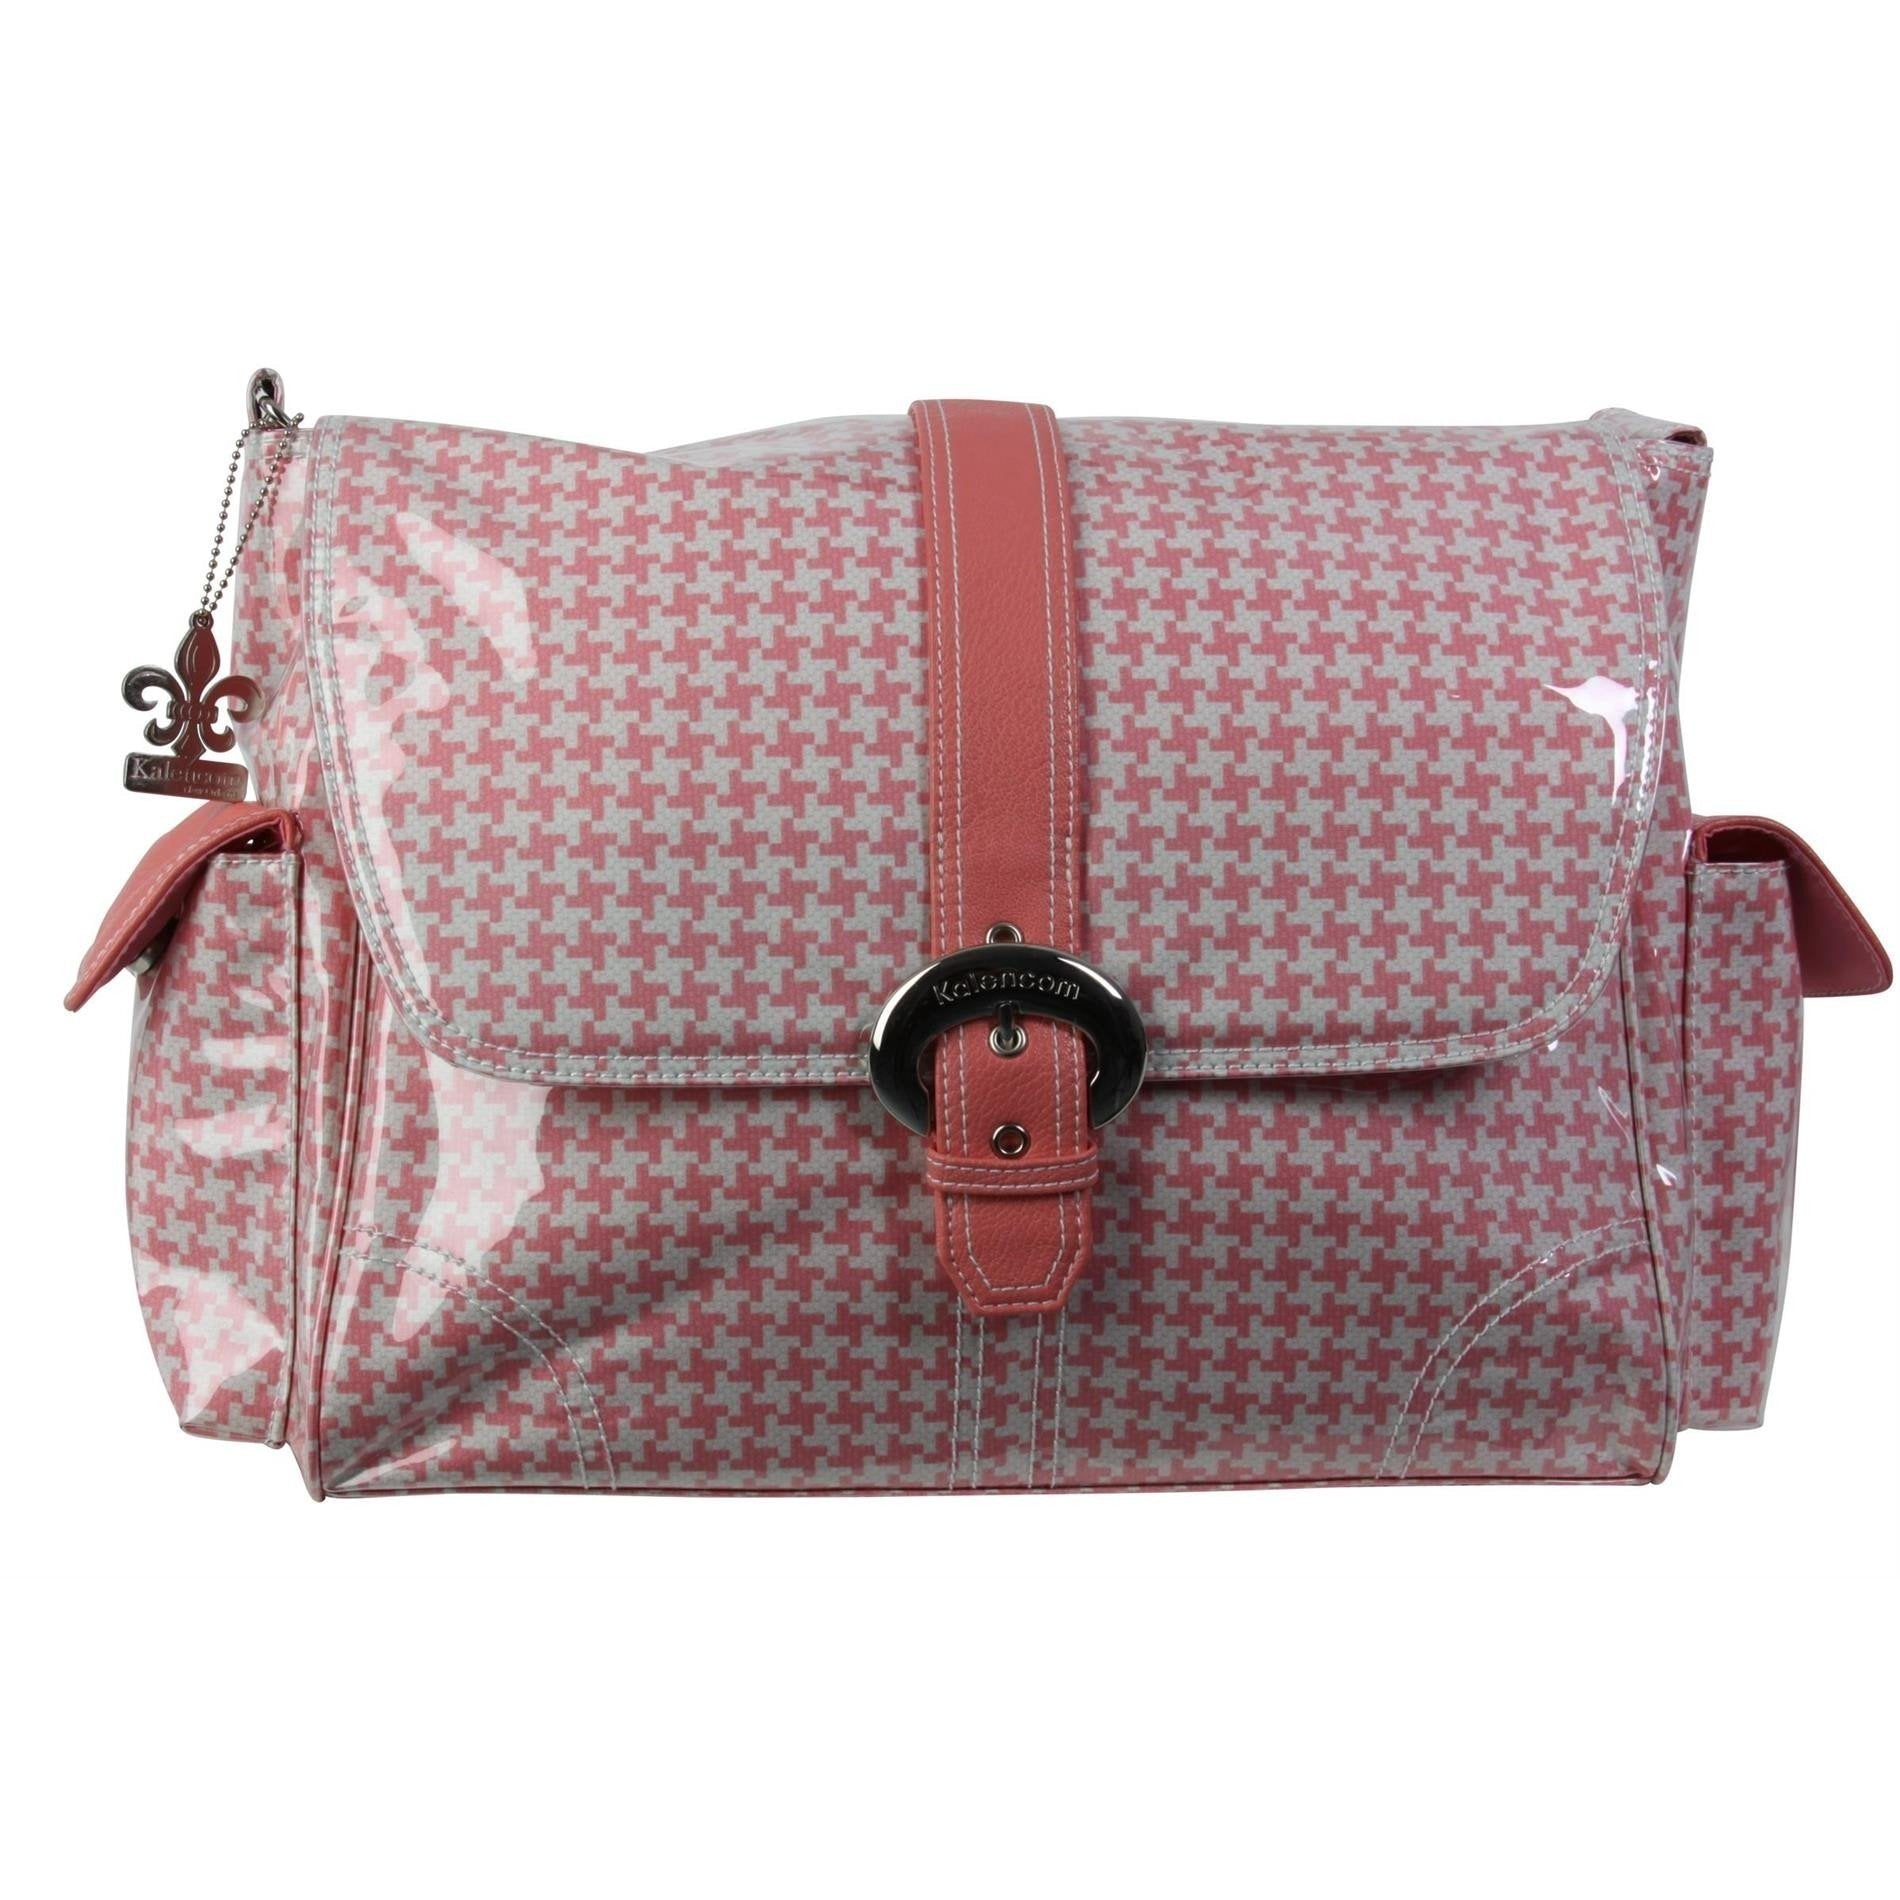 Houndstooth - Pink Laminated Buckle Diaper Bag | Style 2960 - Kalencom-Diaper Bags-Default-Jack and Jill Boutique